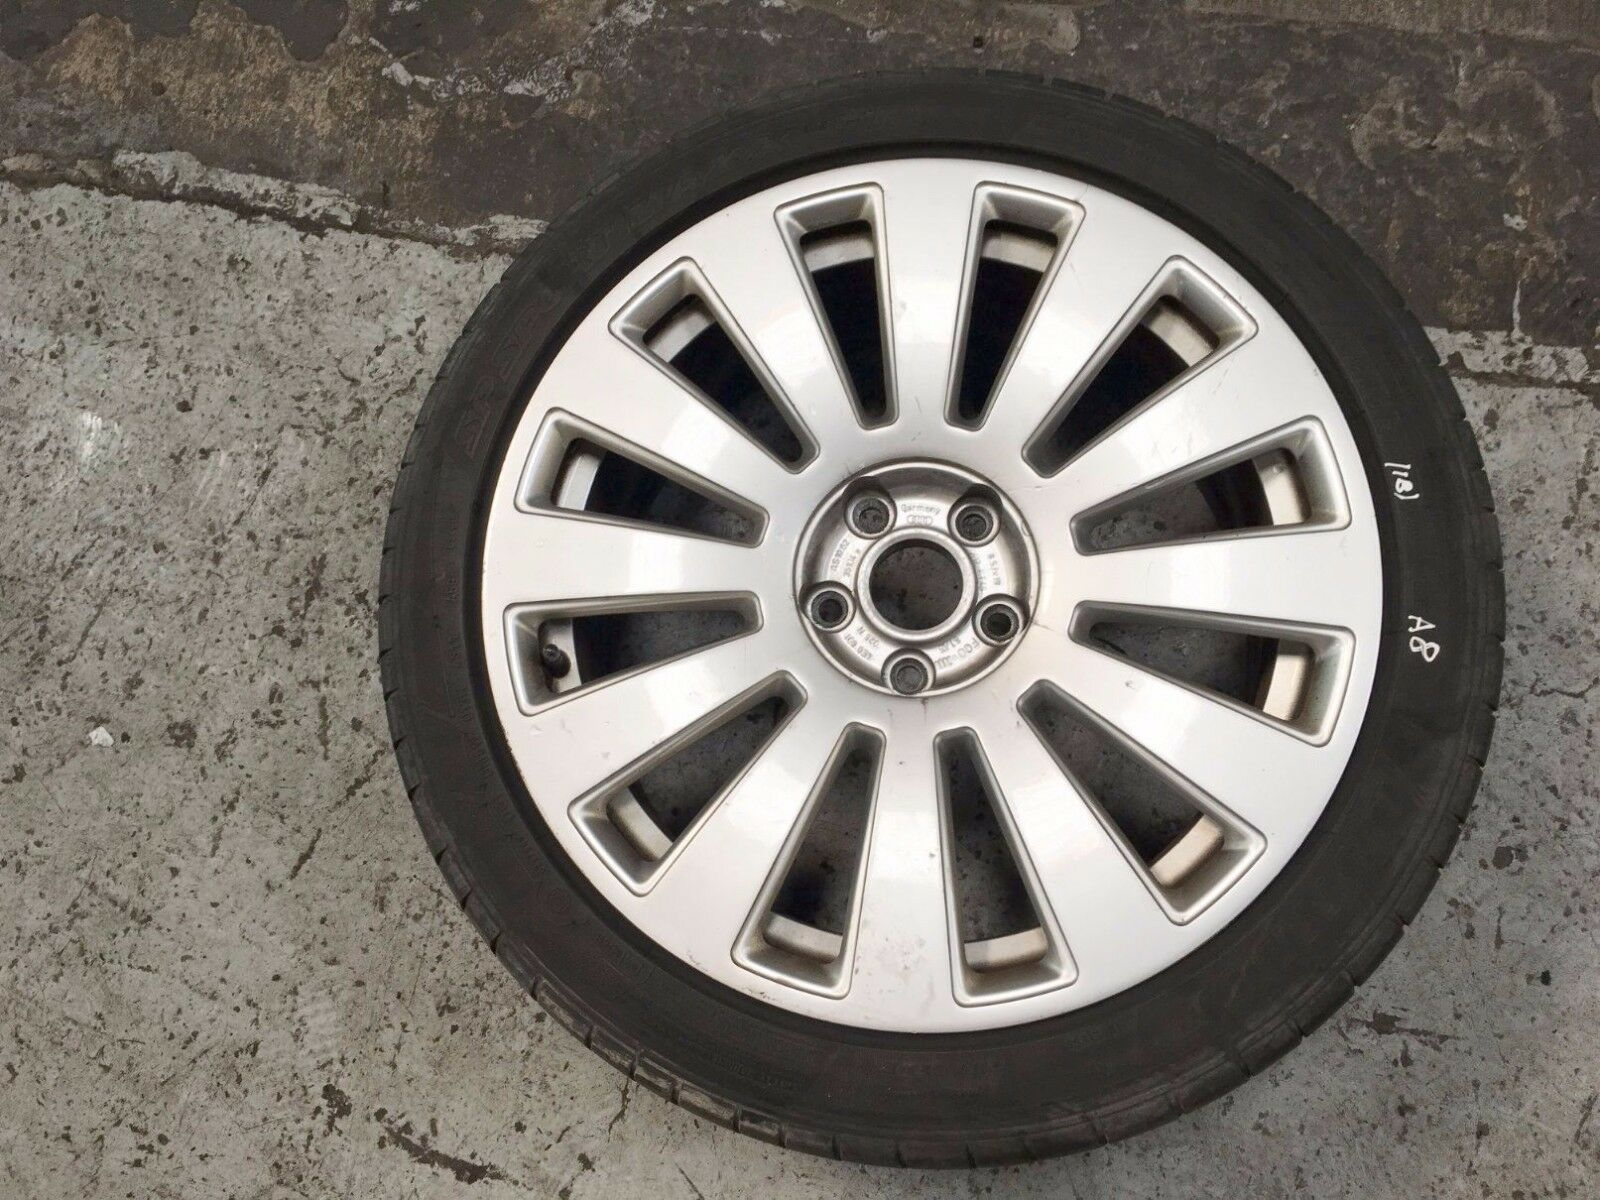 """2008 AUDI A8 D3 19"""" ALLOY WHEEL AND TYRE 255 40R19 4E N 8 5"""